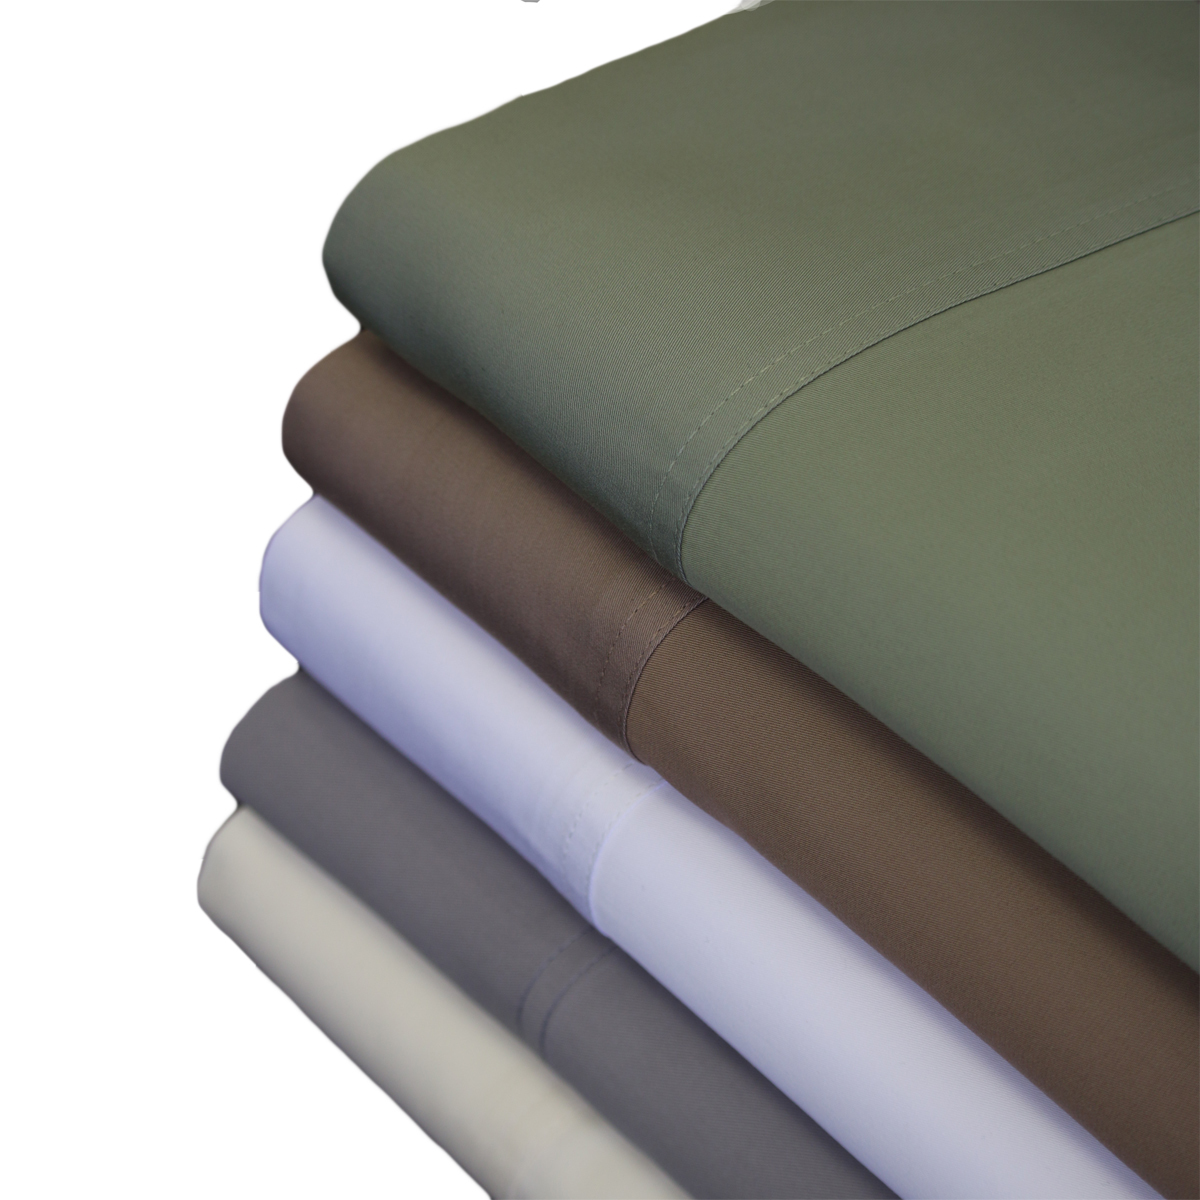 Abripedic, 600 Thread Count 100% Bamboo Viscose Sheet Set Collection by Abripedic. Are you comfort conscious? These 100% Bamboo viscose 600 Thread Count Sheet Set is an impeccable choice. These 100% bamboo viscose sheets are acknowledged for their natural softness, durability, and breathability. These sheets are cool and welcoming every night of the week. Experience our superior bamboo viscose sheets for yourself, and see what we mean. They come in 5 soft and soothing colors and make every bed in your home a bamboo viscose one. Machine wash in cold water.Delicate cycle with mild detergent. No Bleach. Tumble Dry on low heat. Remove immediately at end of cycle. Press with warm iron if needed. Do not use hot water.